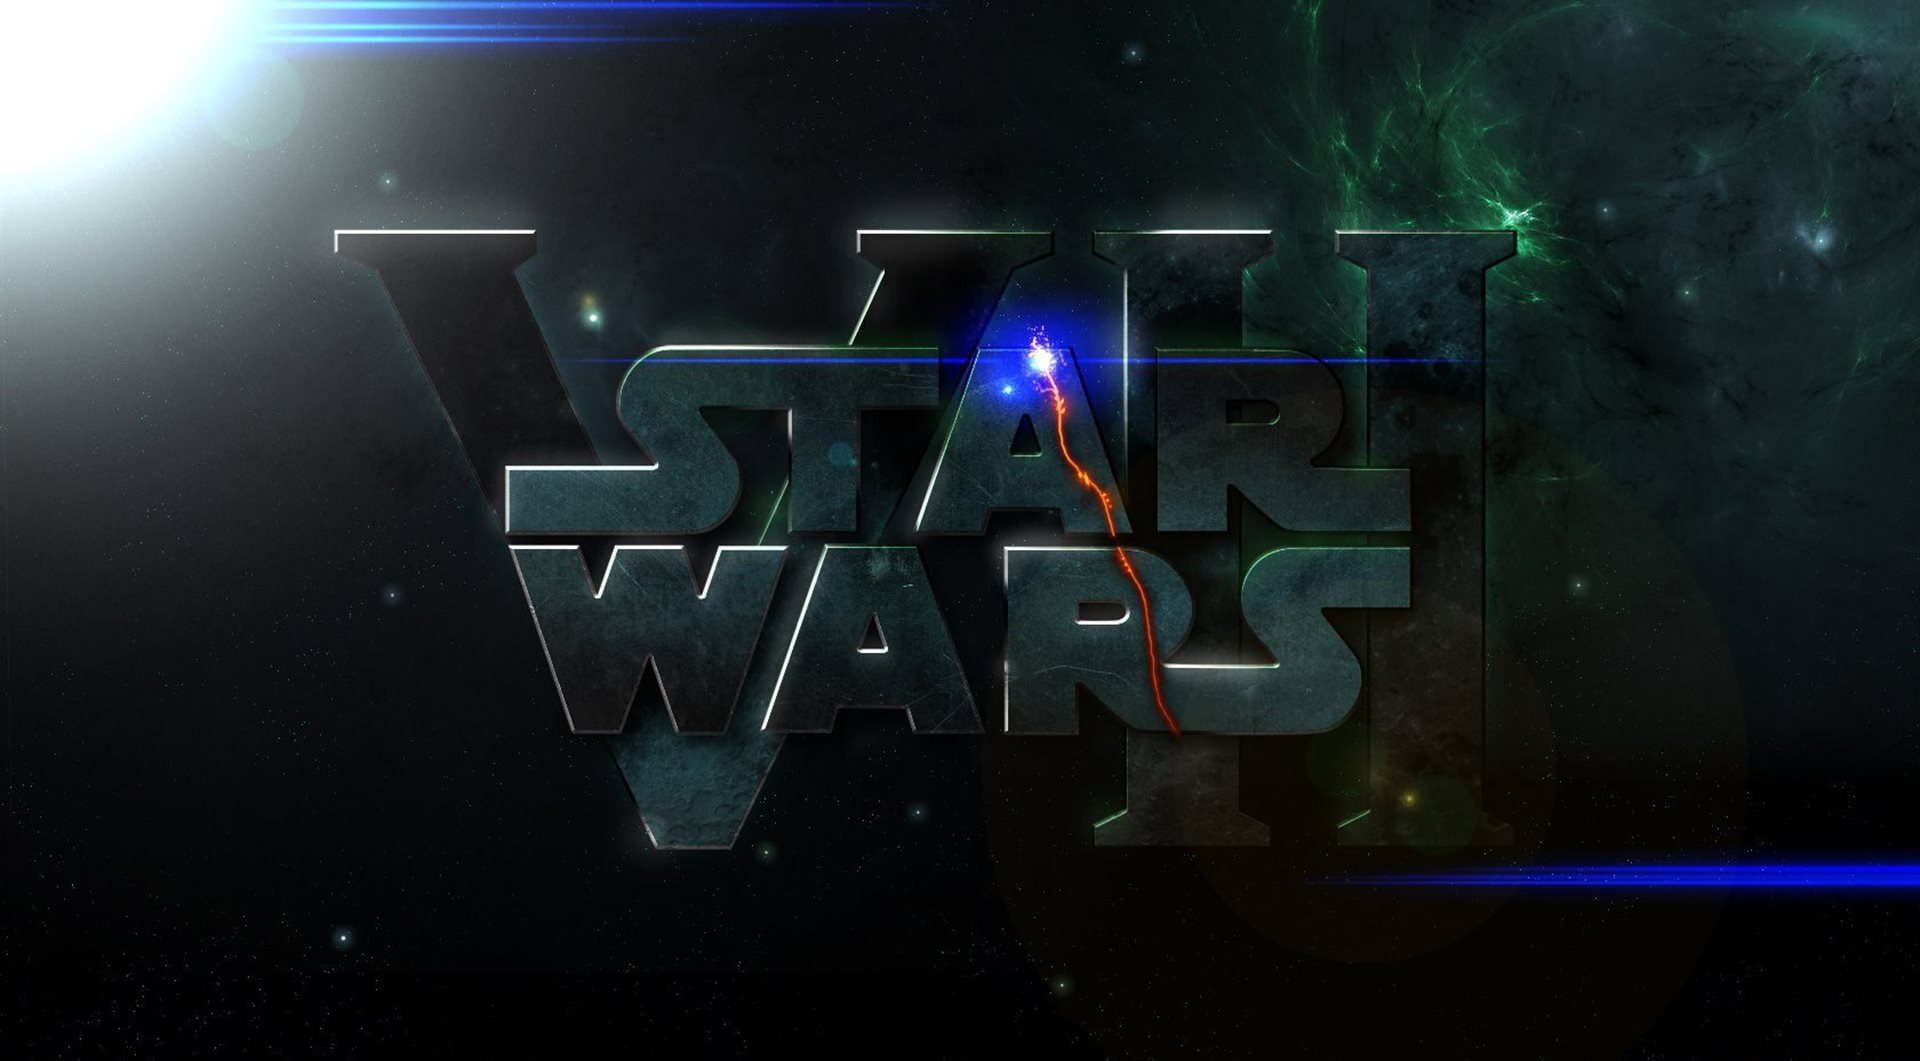 STAR WARS THE FORCE AWAKENS WALLPAPERS FREE Wallpapers Background 1920x1061